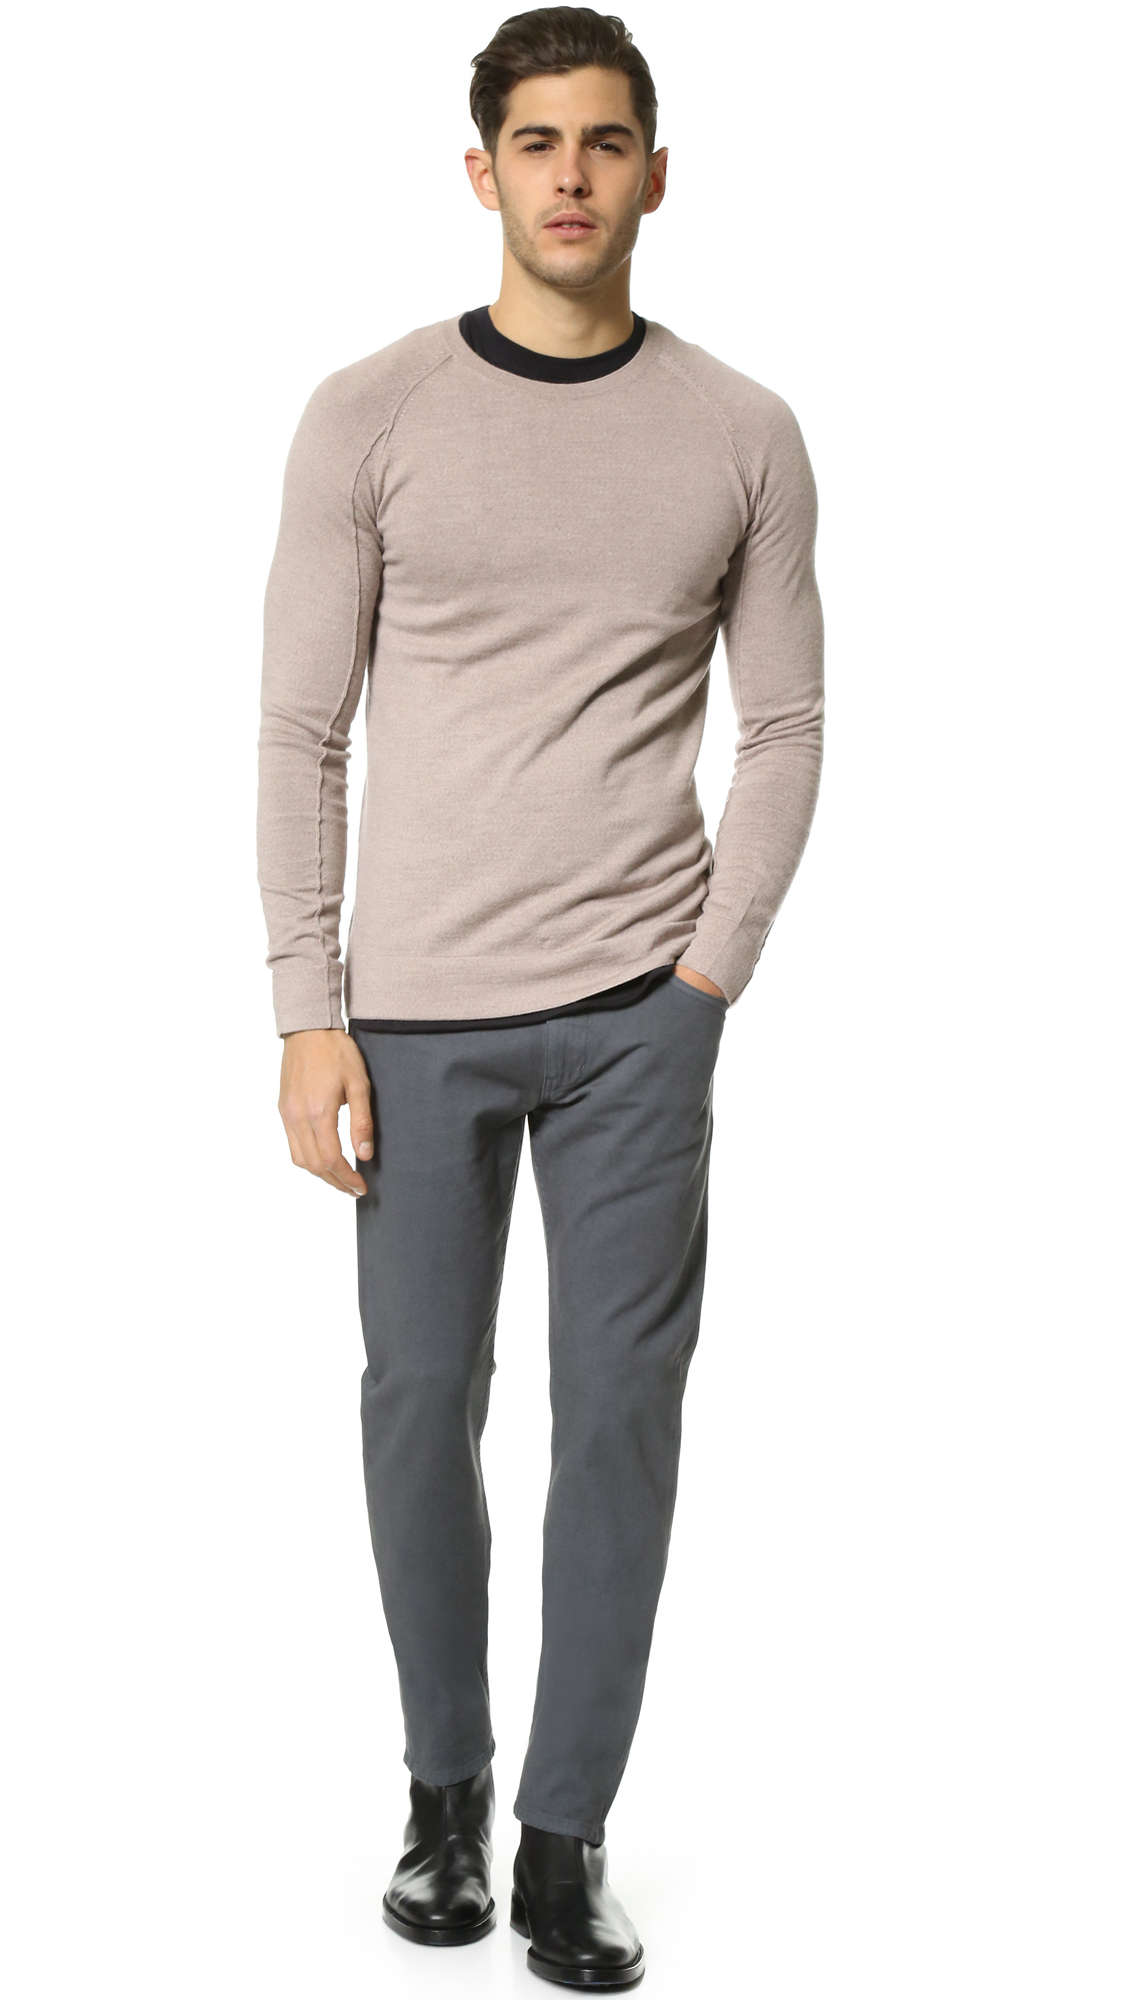 00f30c174e Lyst - Helmut Lang Fine Wool Crew Neck Sweater in Natural for Men